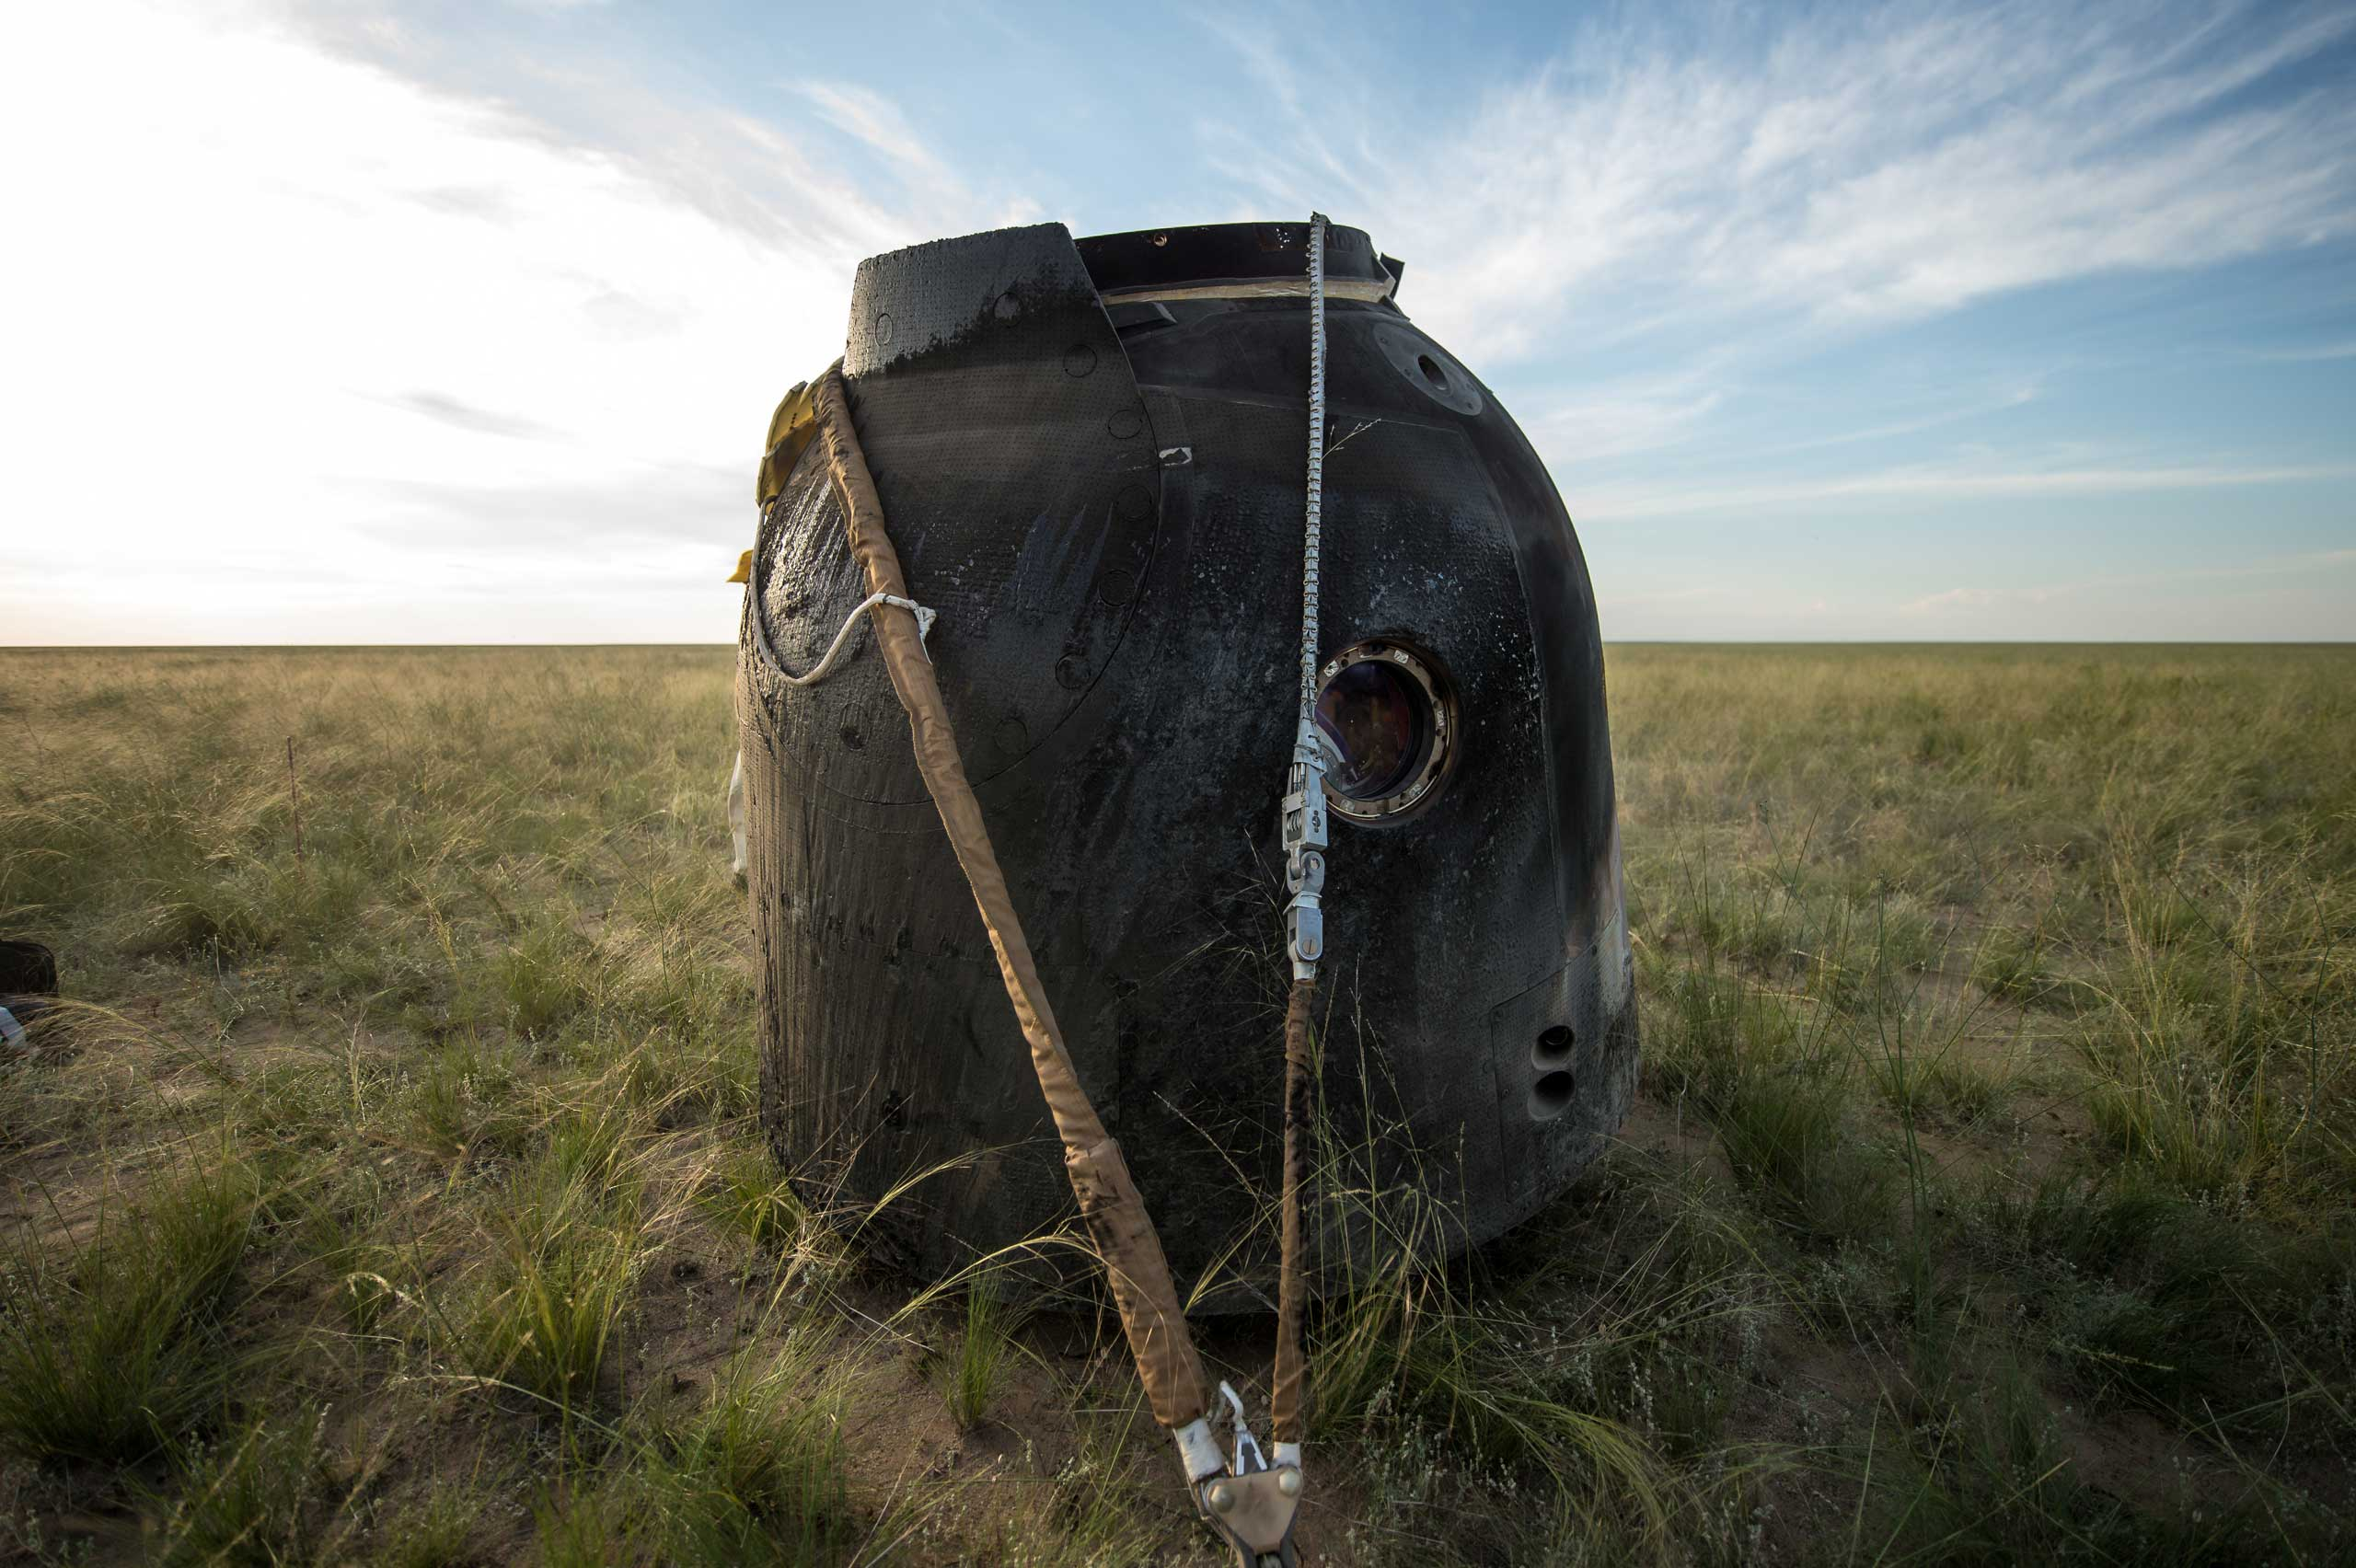 The Soyuz spacecraft returned from and came to rest in the desert near the town of Zhezkazgan, Kazakhstan, on June 11, 2015. Virts, Shkaplerov and Cristoforetti were still aboard the spacecraft in this photo.